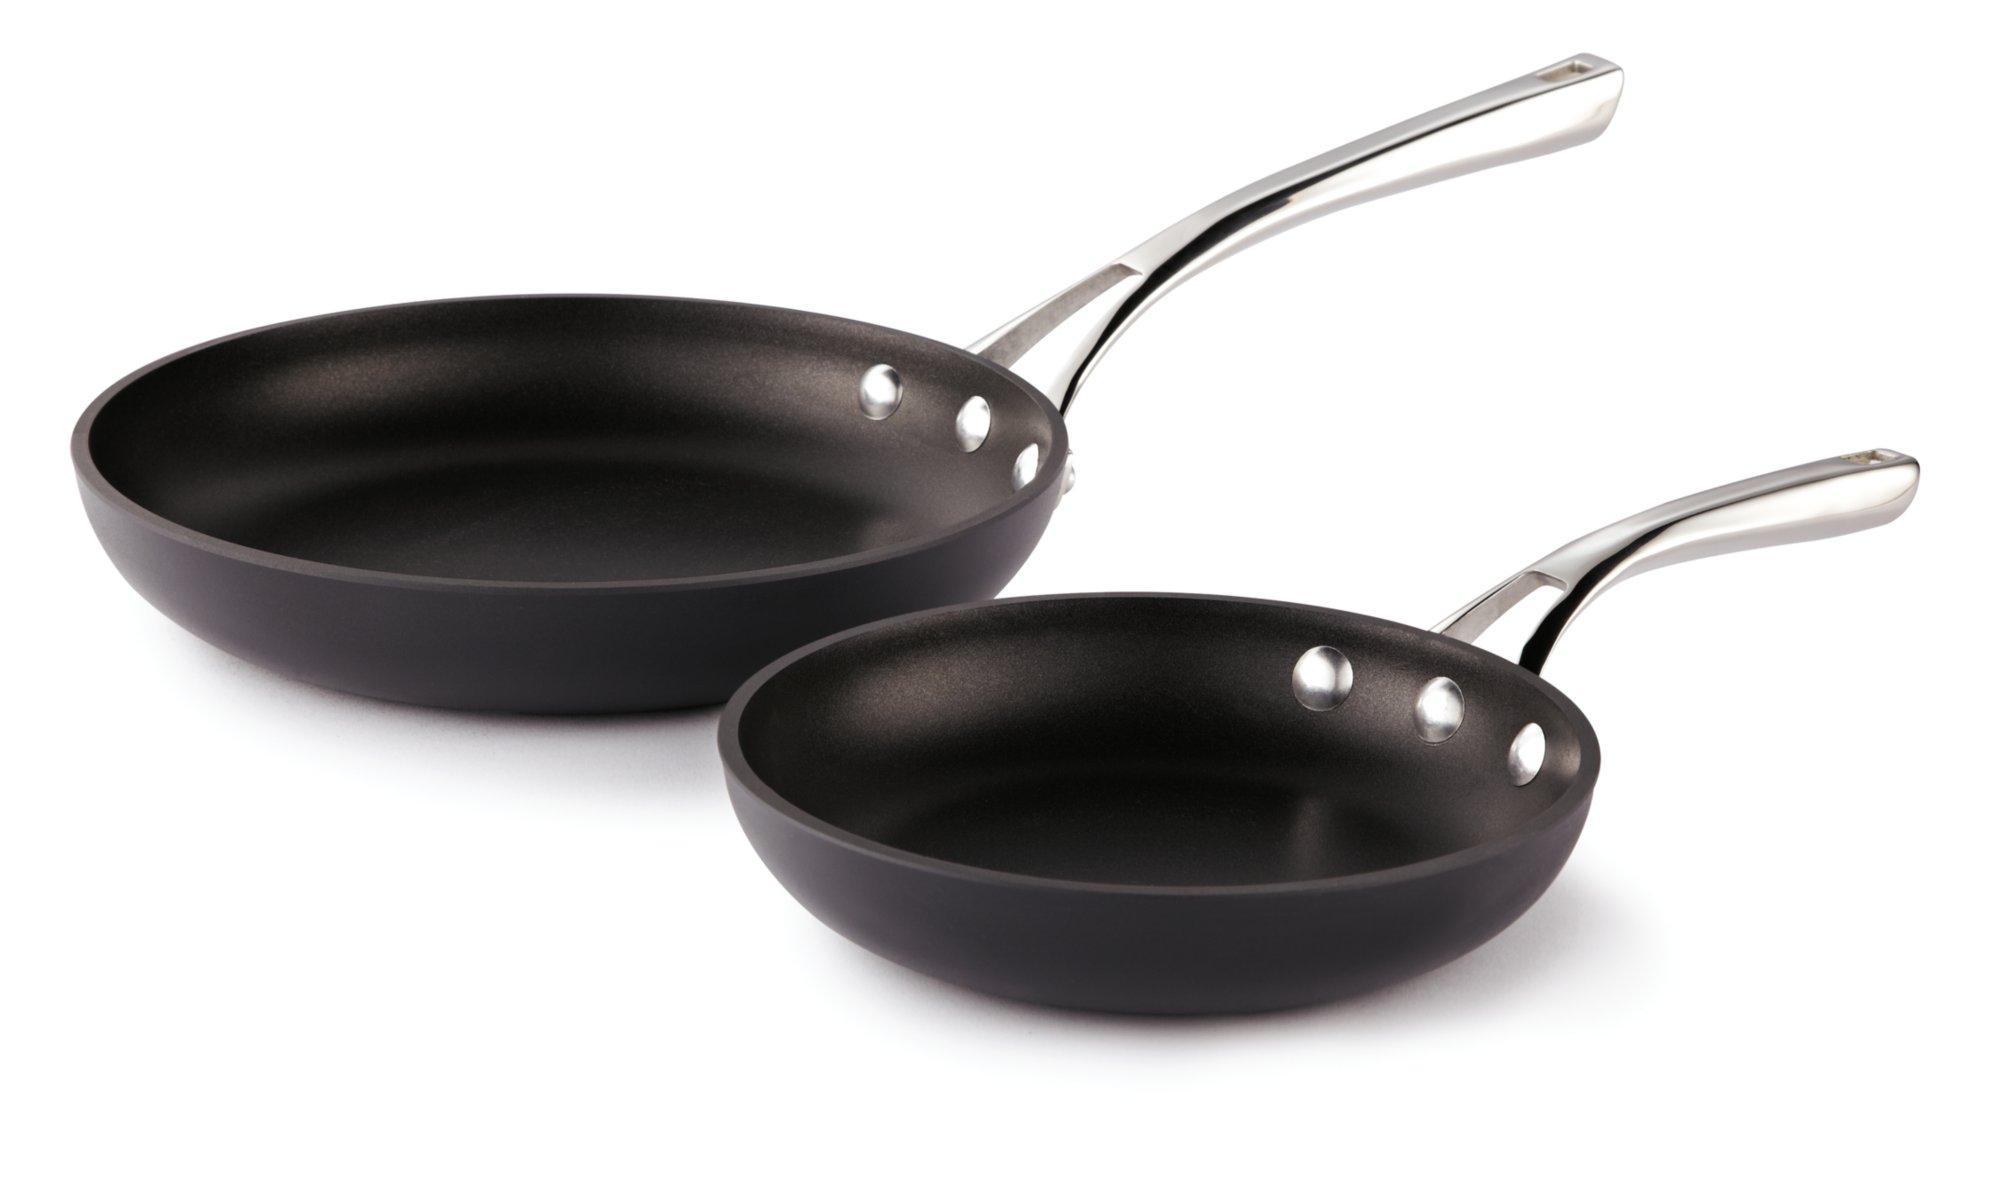 Calphalon Williams-Sonoma Elite Nonstick 8-in. & 10-in. Fry Pan Set